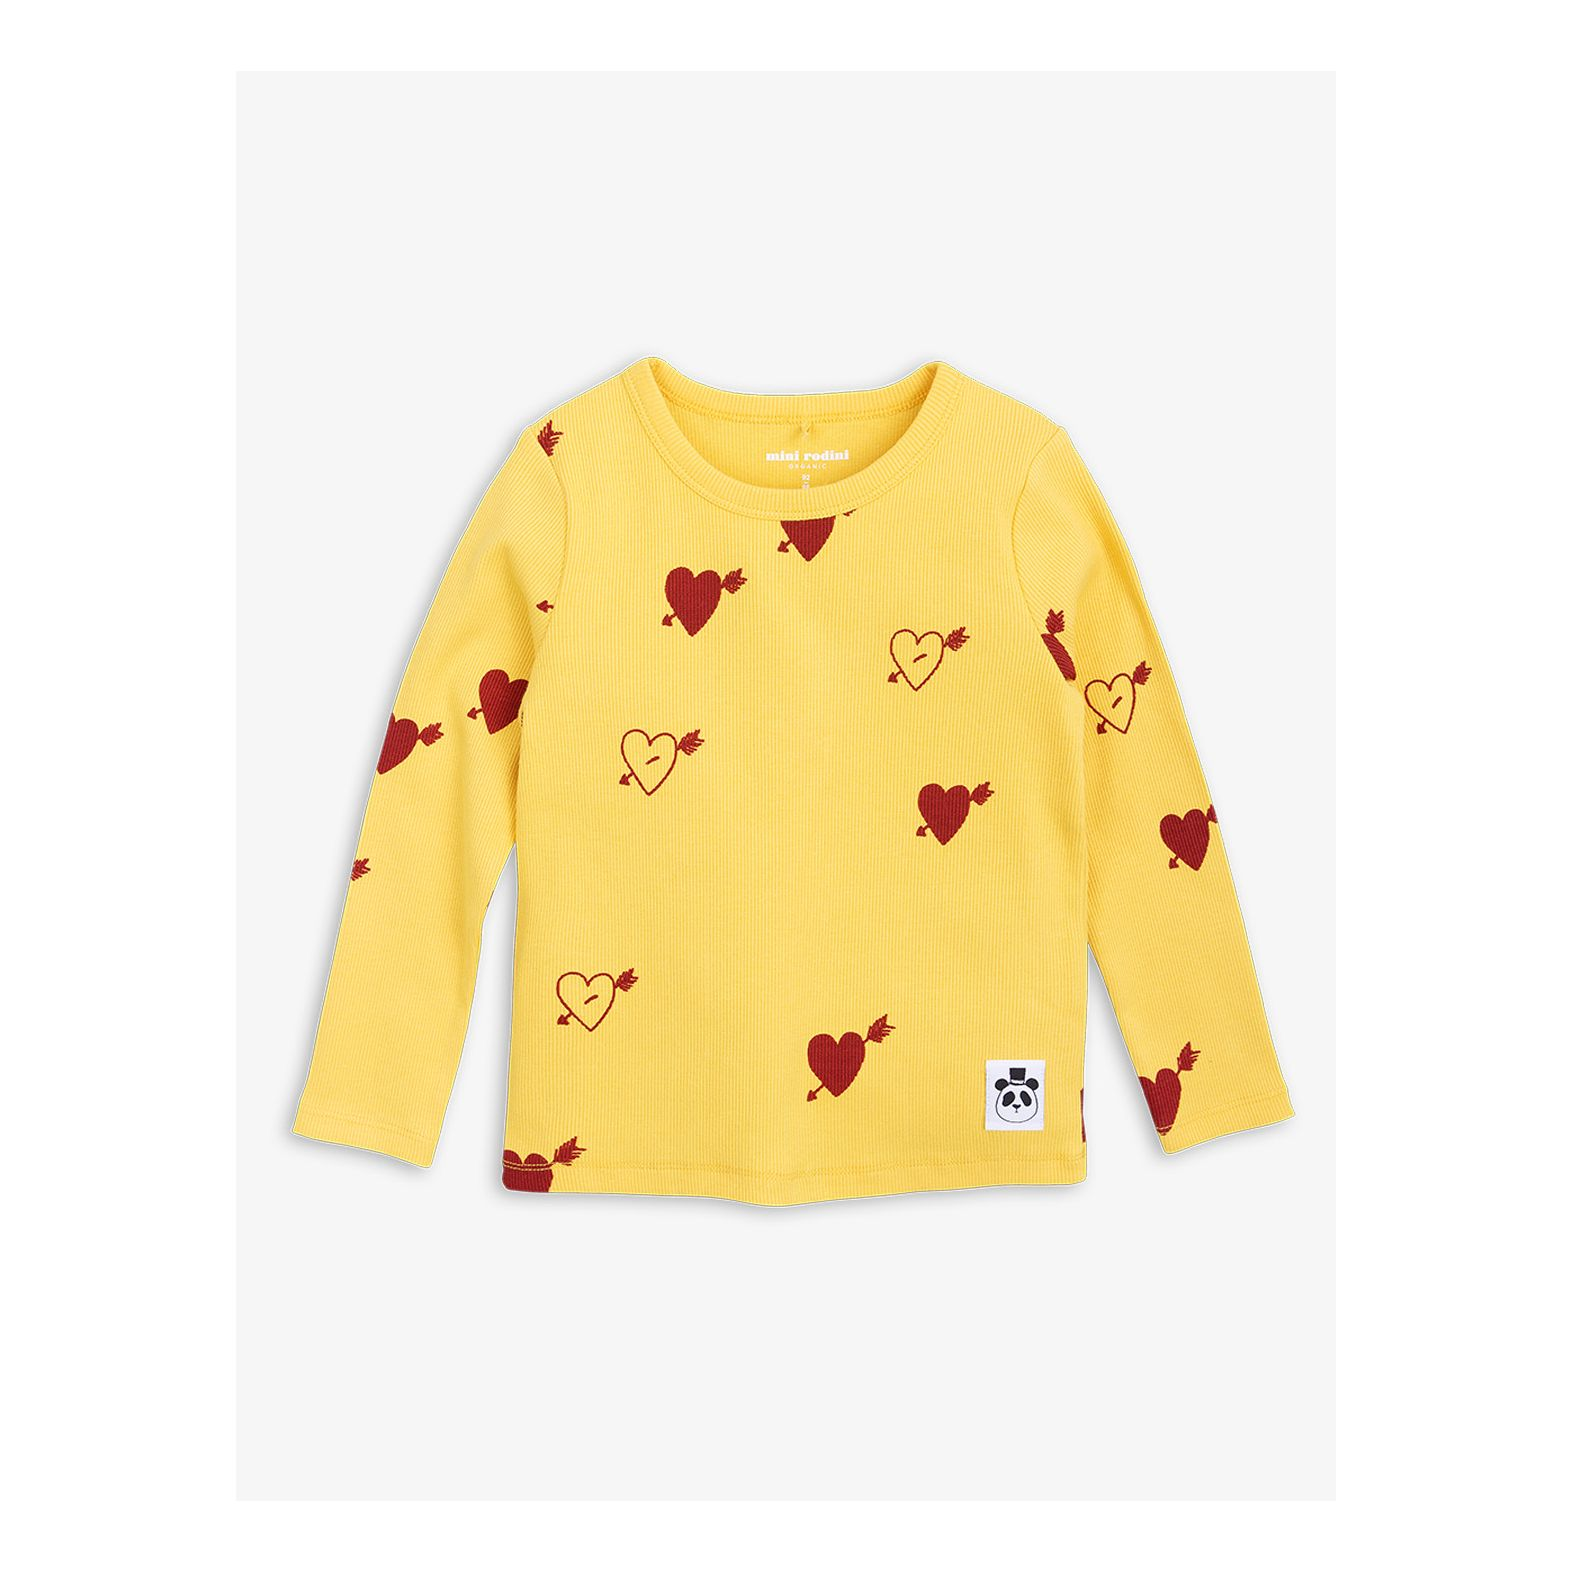 mini-rodini-heart-rib-ls-tee-yellow_1.jpeg